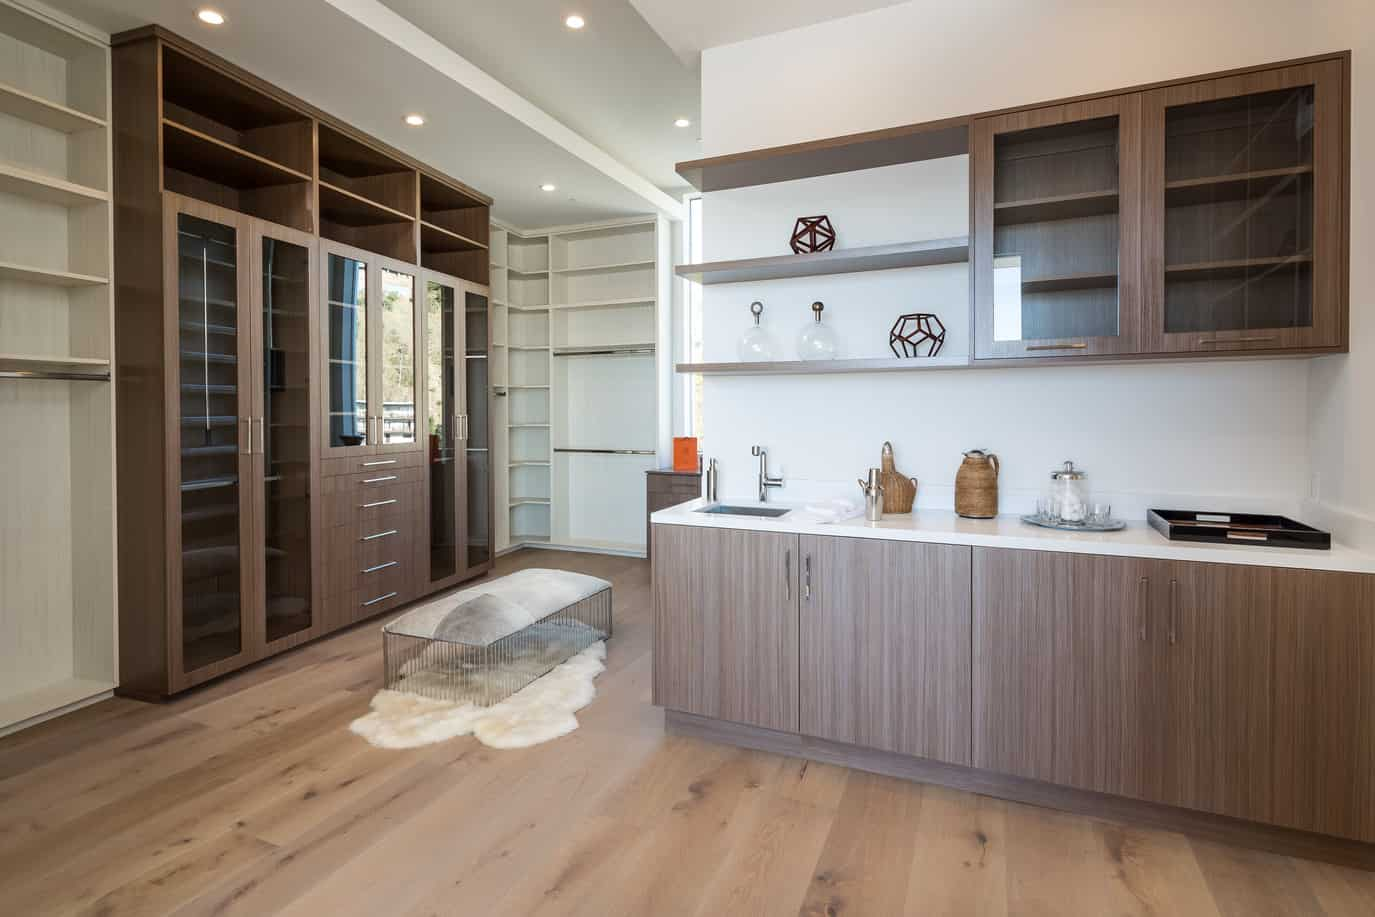 Architecture-Contemporary-Residence-Noesis Group-17-1 Kindesign